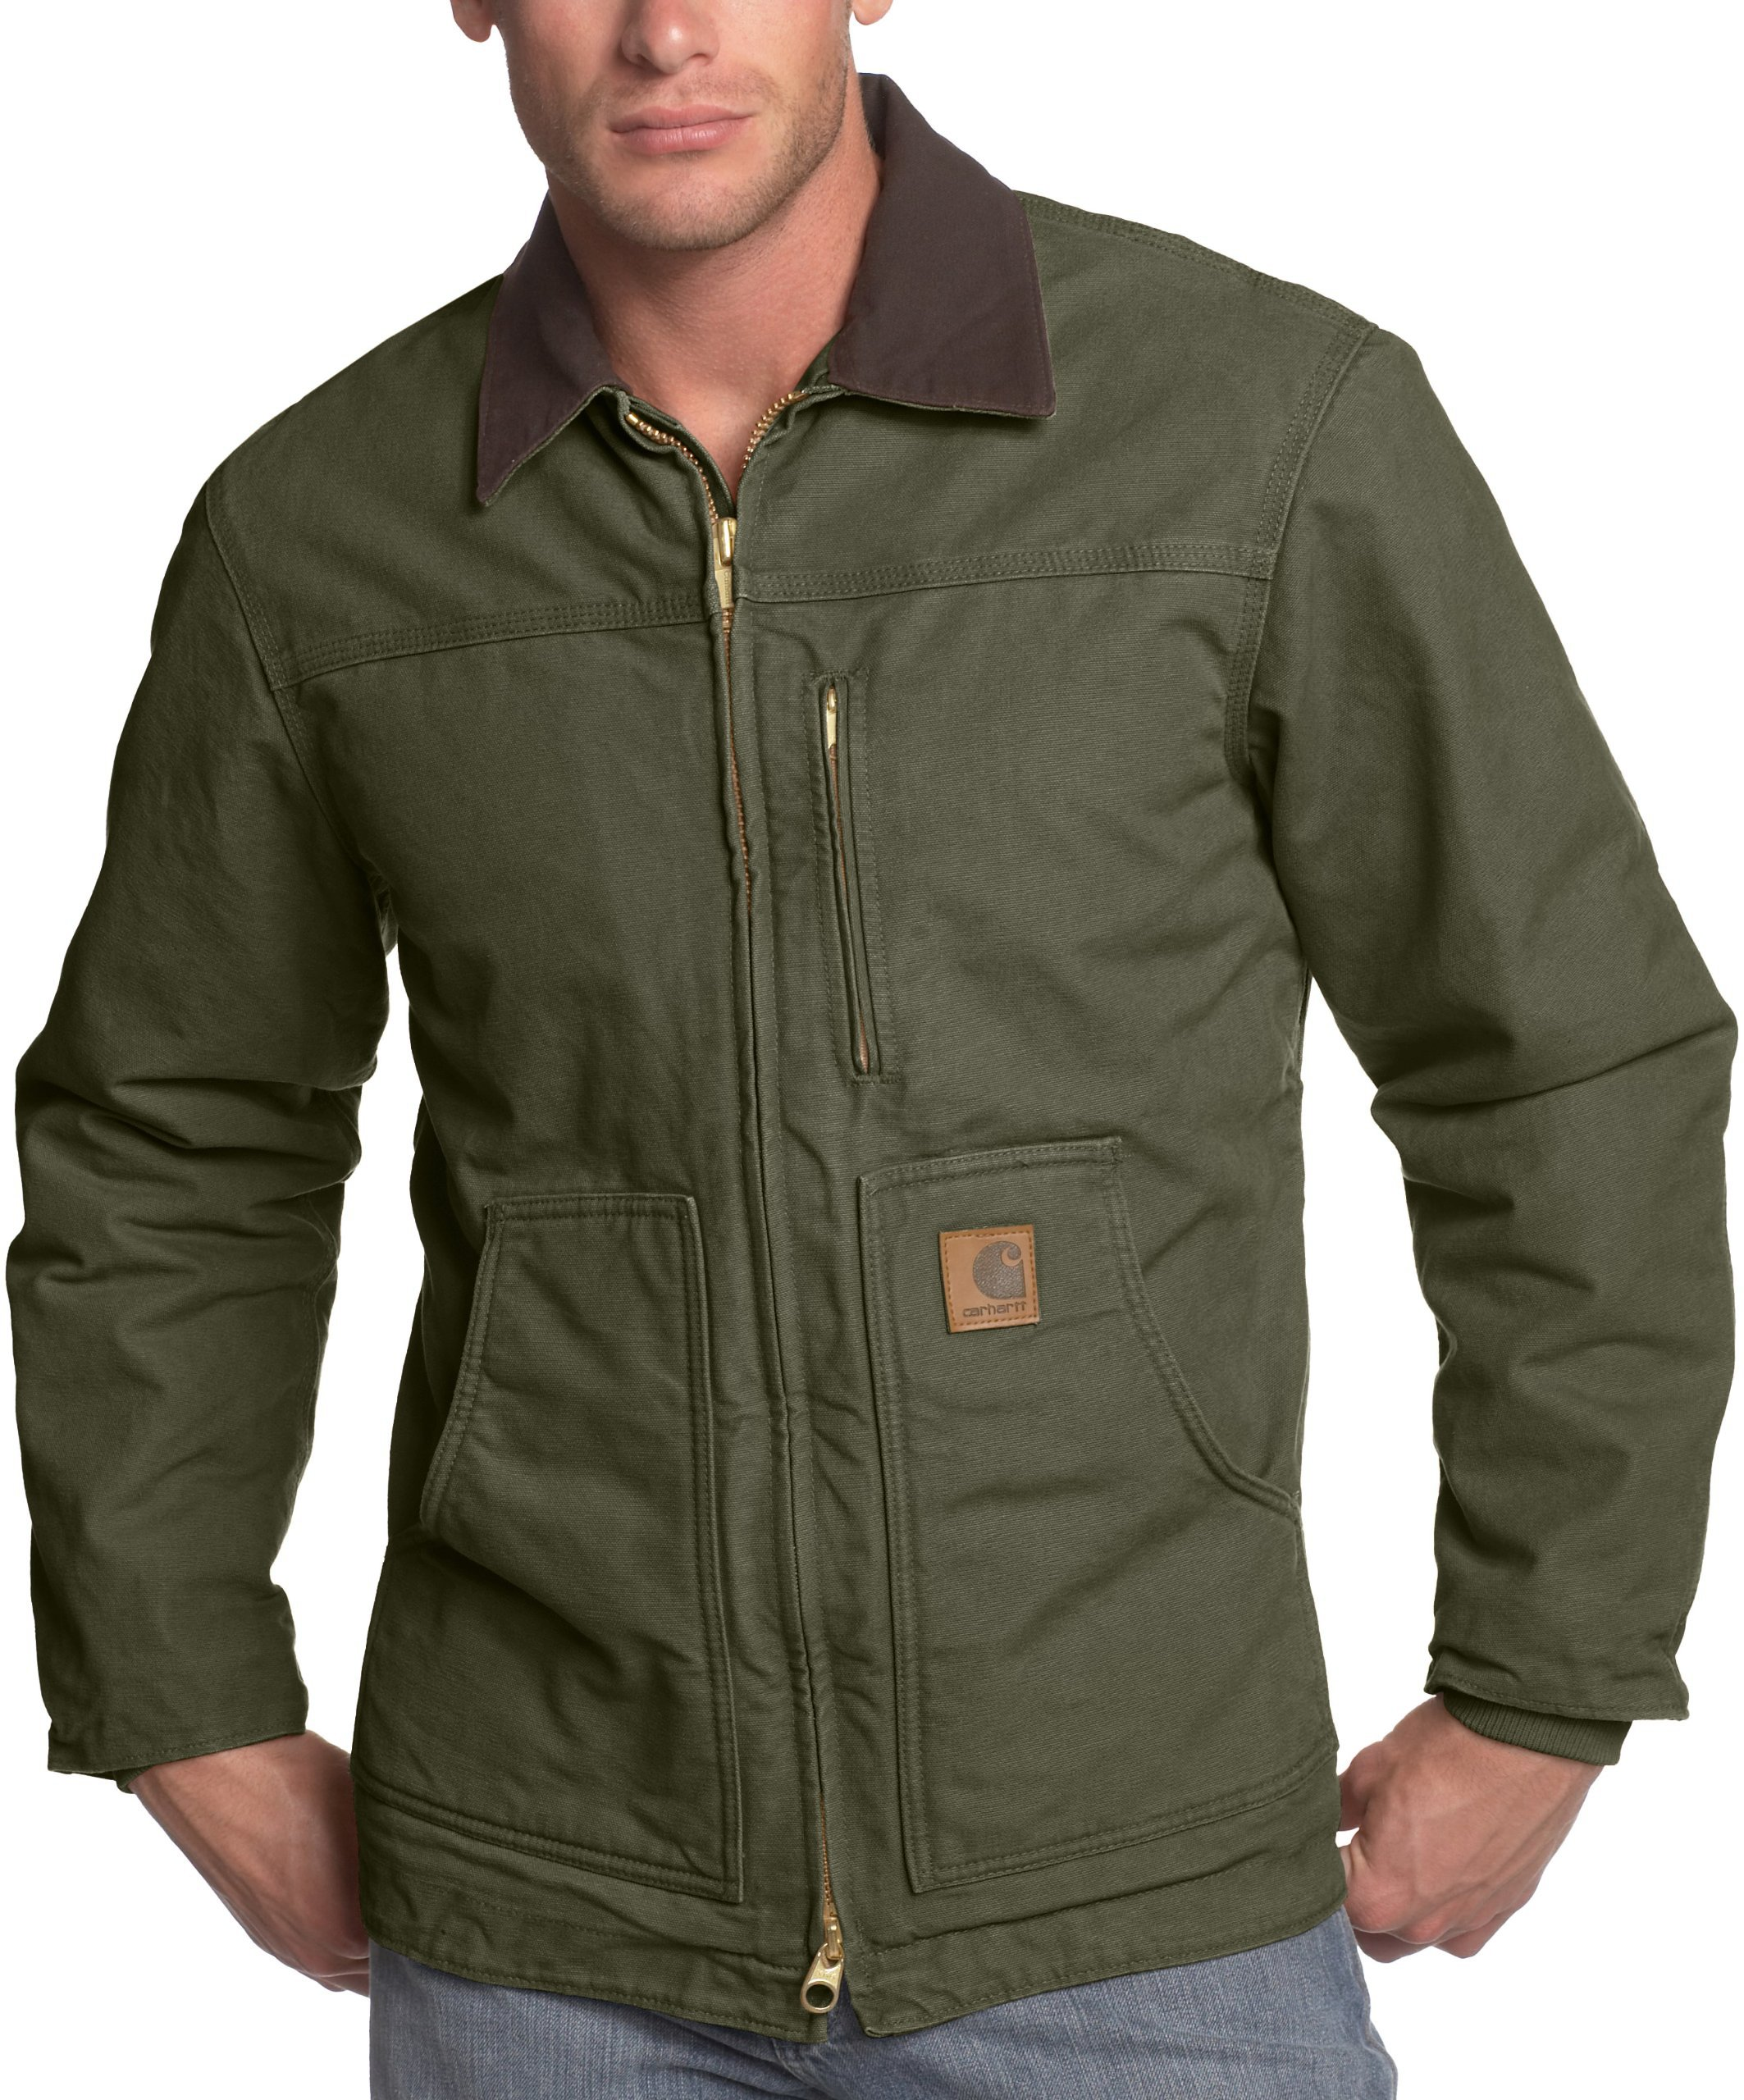 Carhartt Men's Ridge Sherpa Lined Coat - Small - Army Green